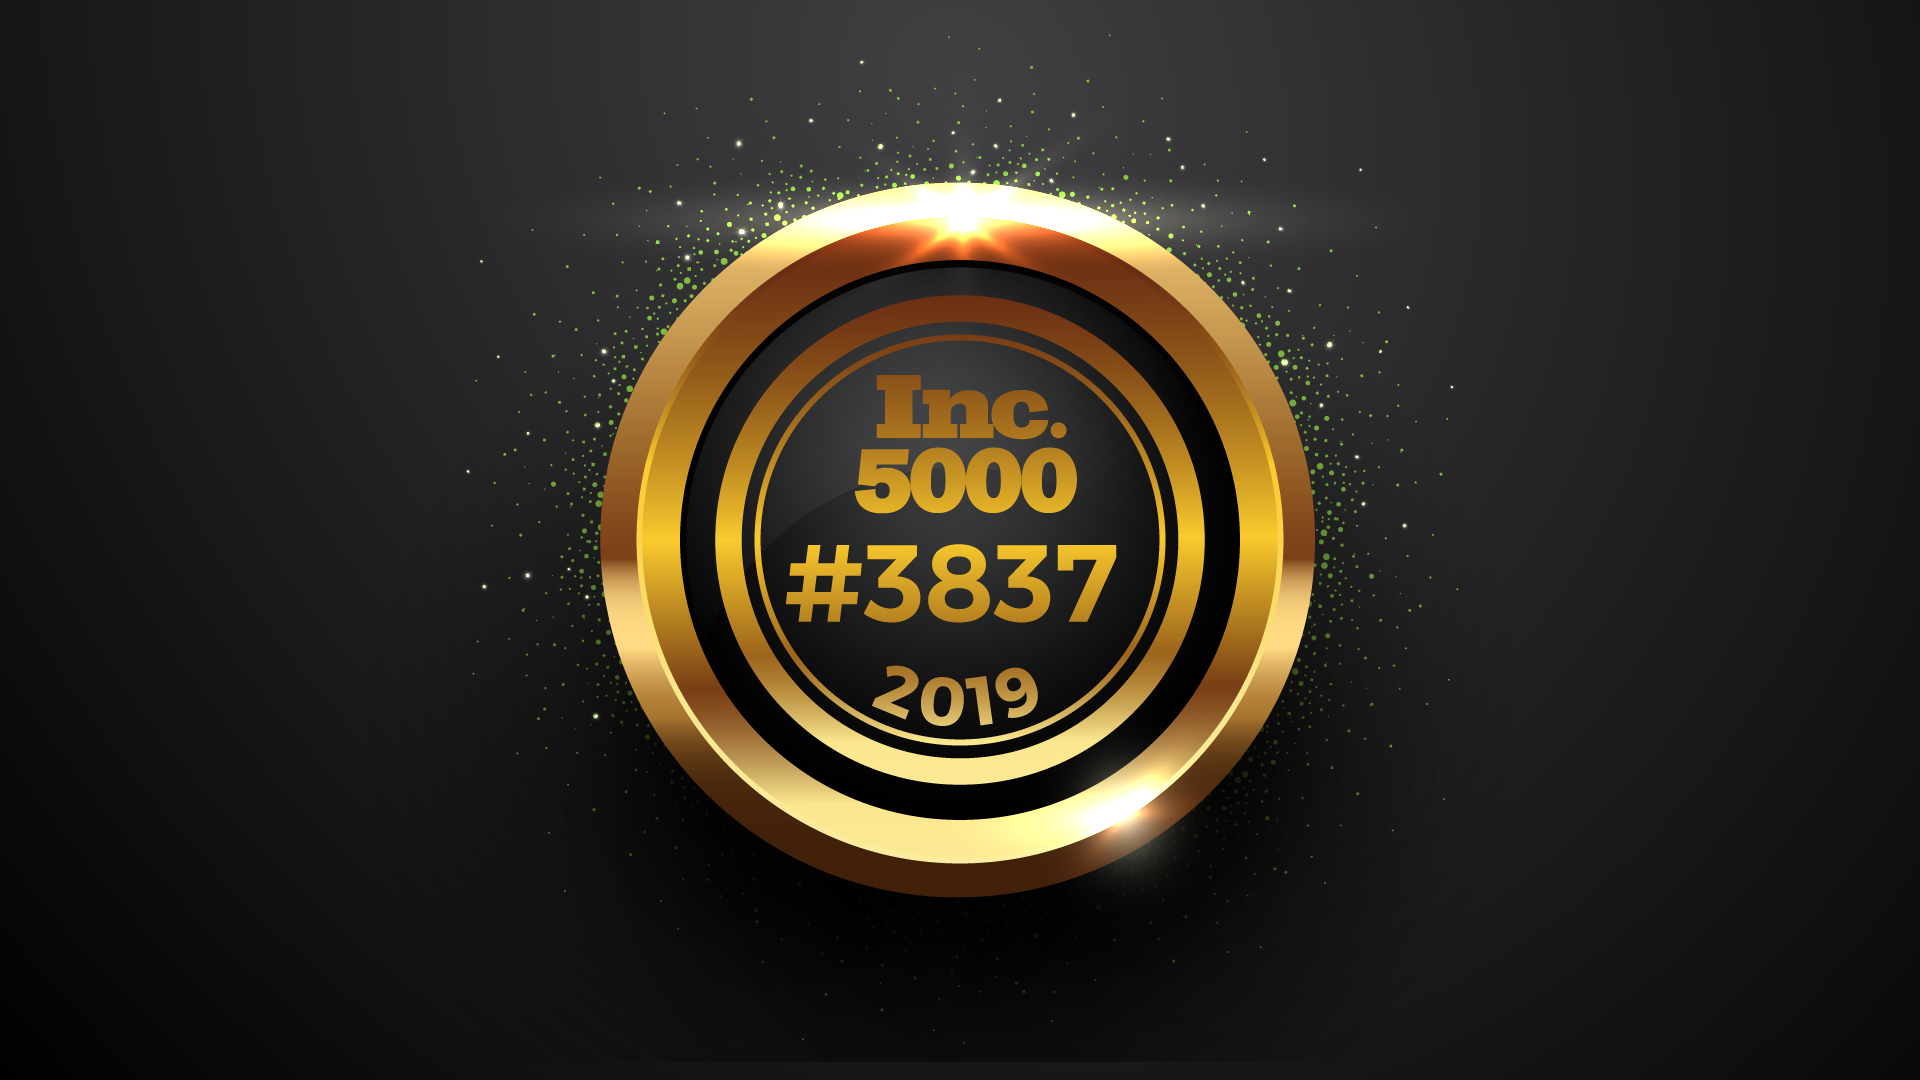 Inc. 5000 seal with Point of Rental's #3837 rank in 2019